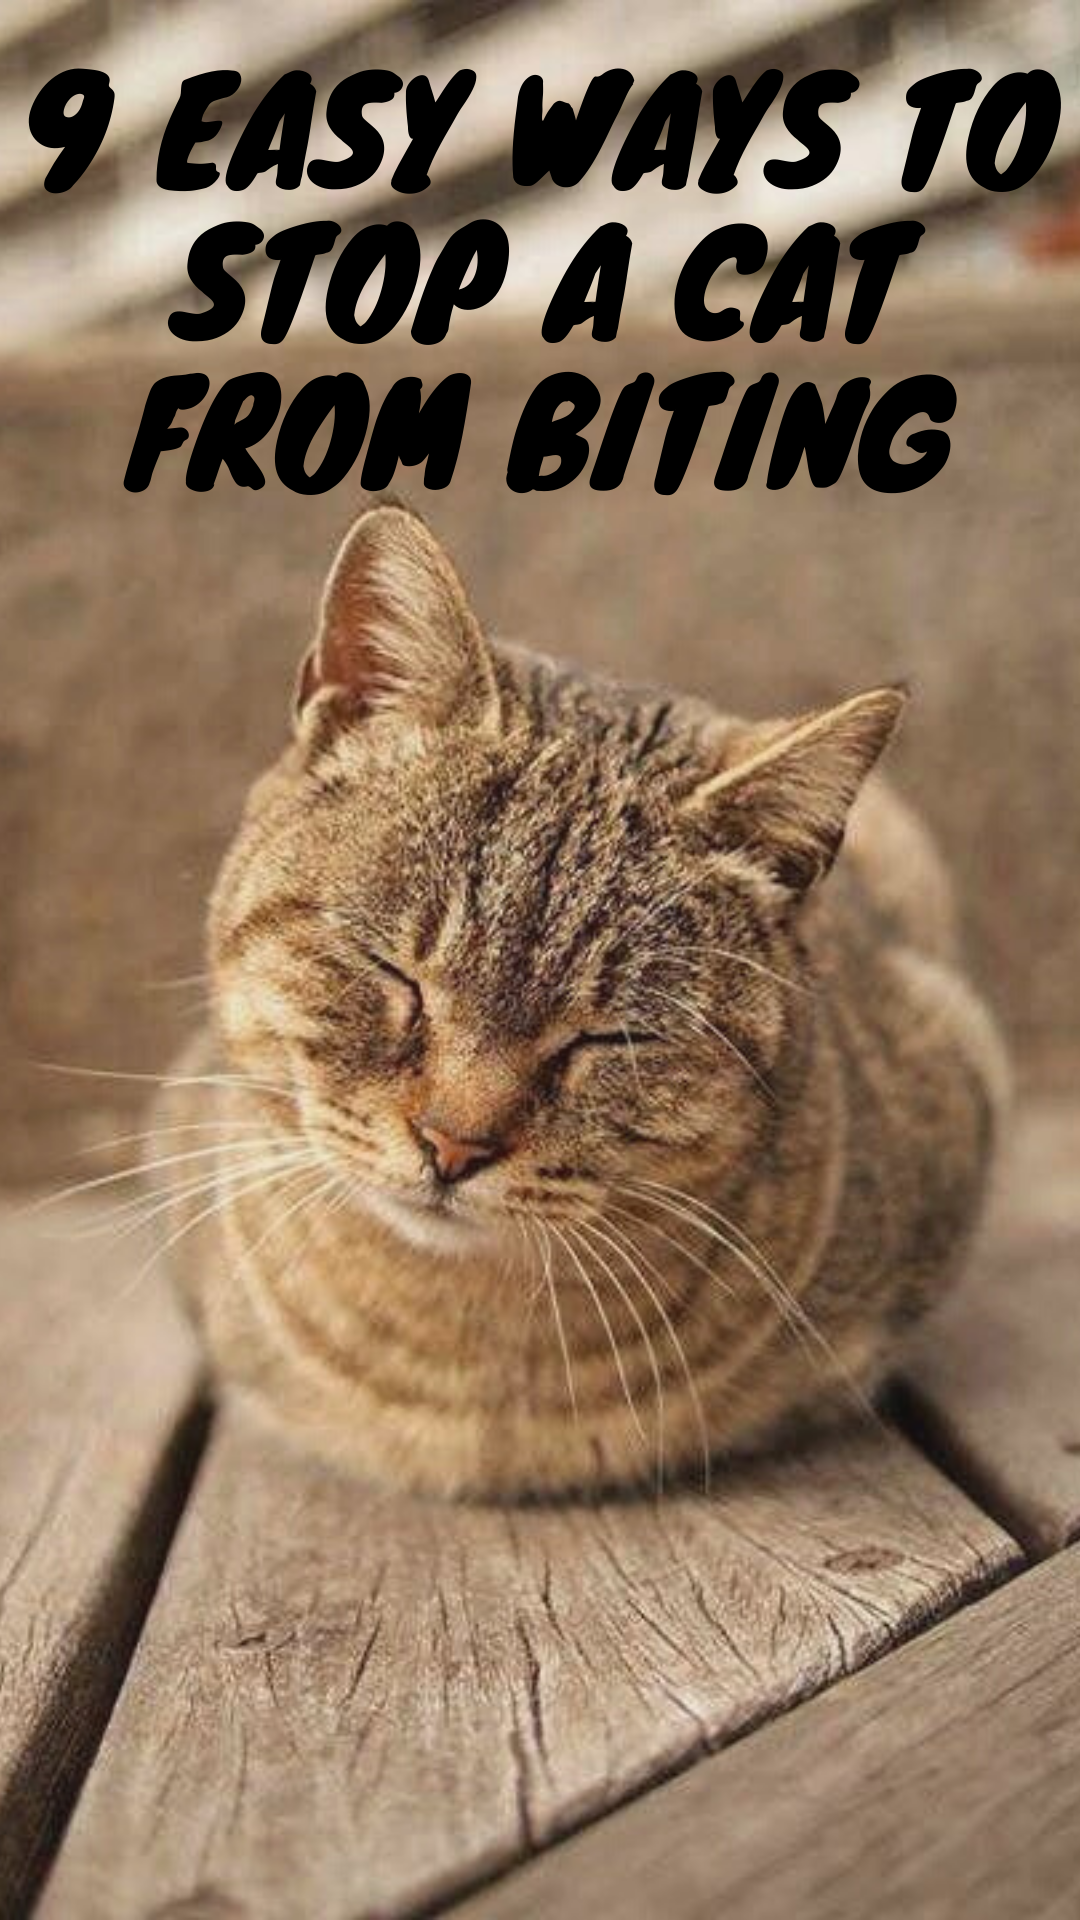 9 Easy Ways To Stop A Cat From Biting Cats Funny Cats Cat Facts